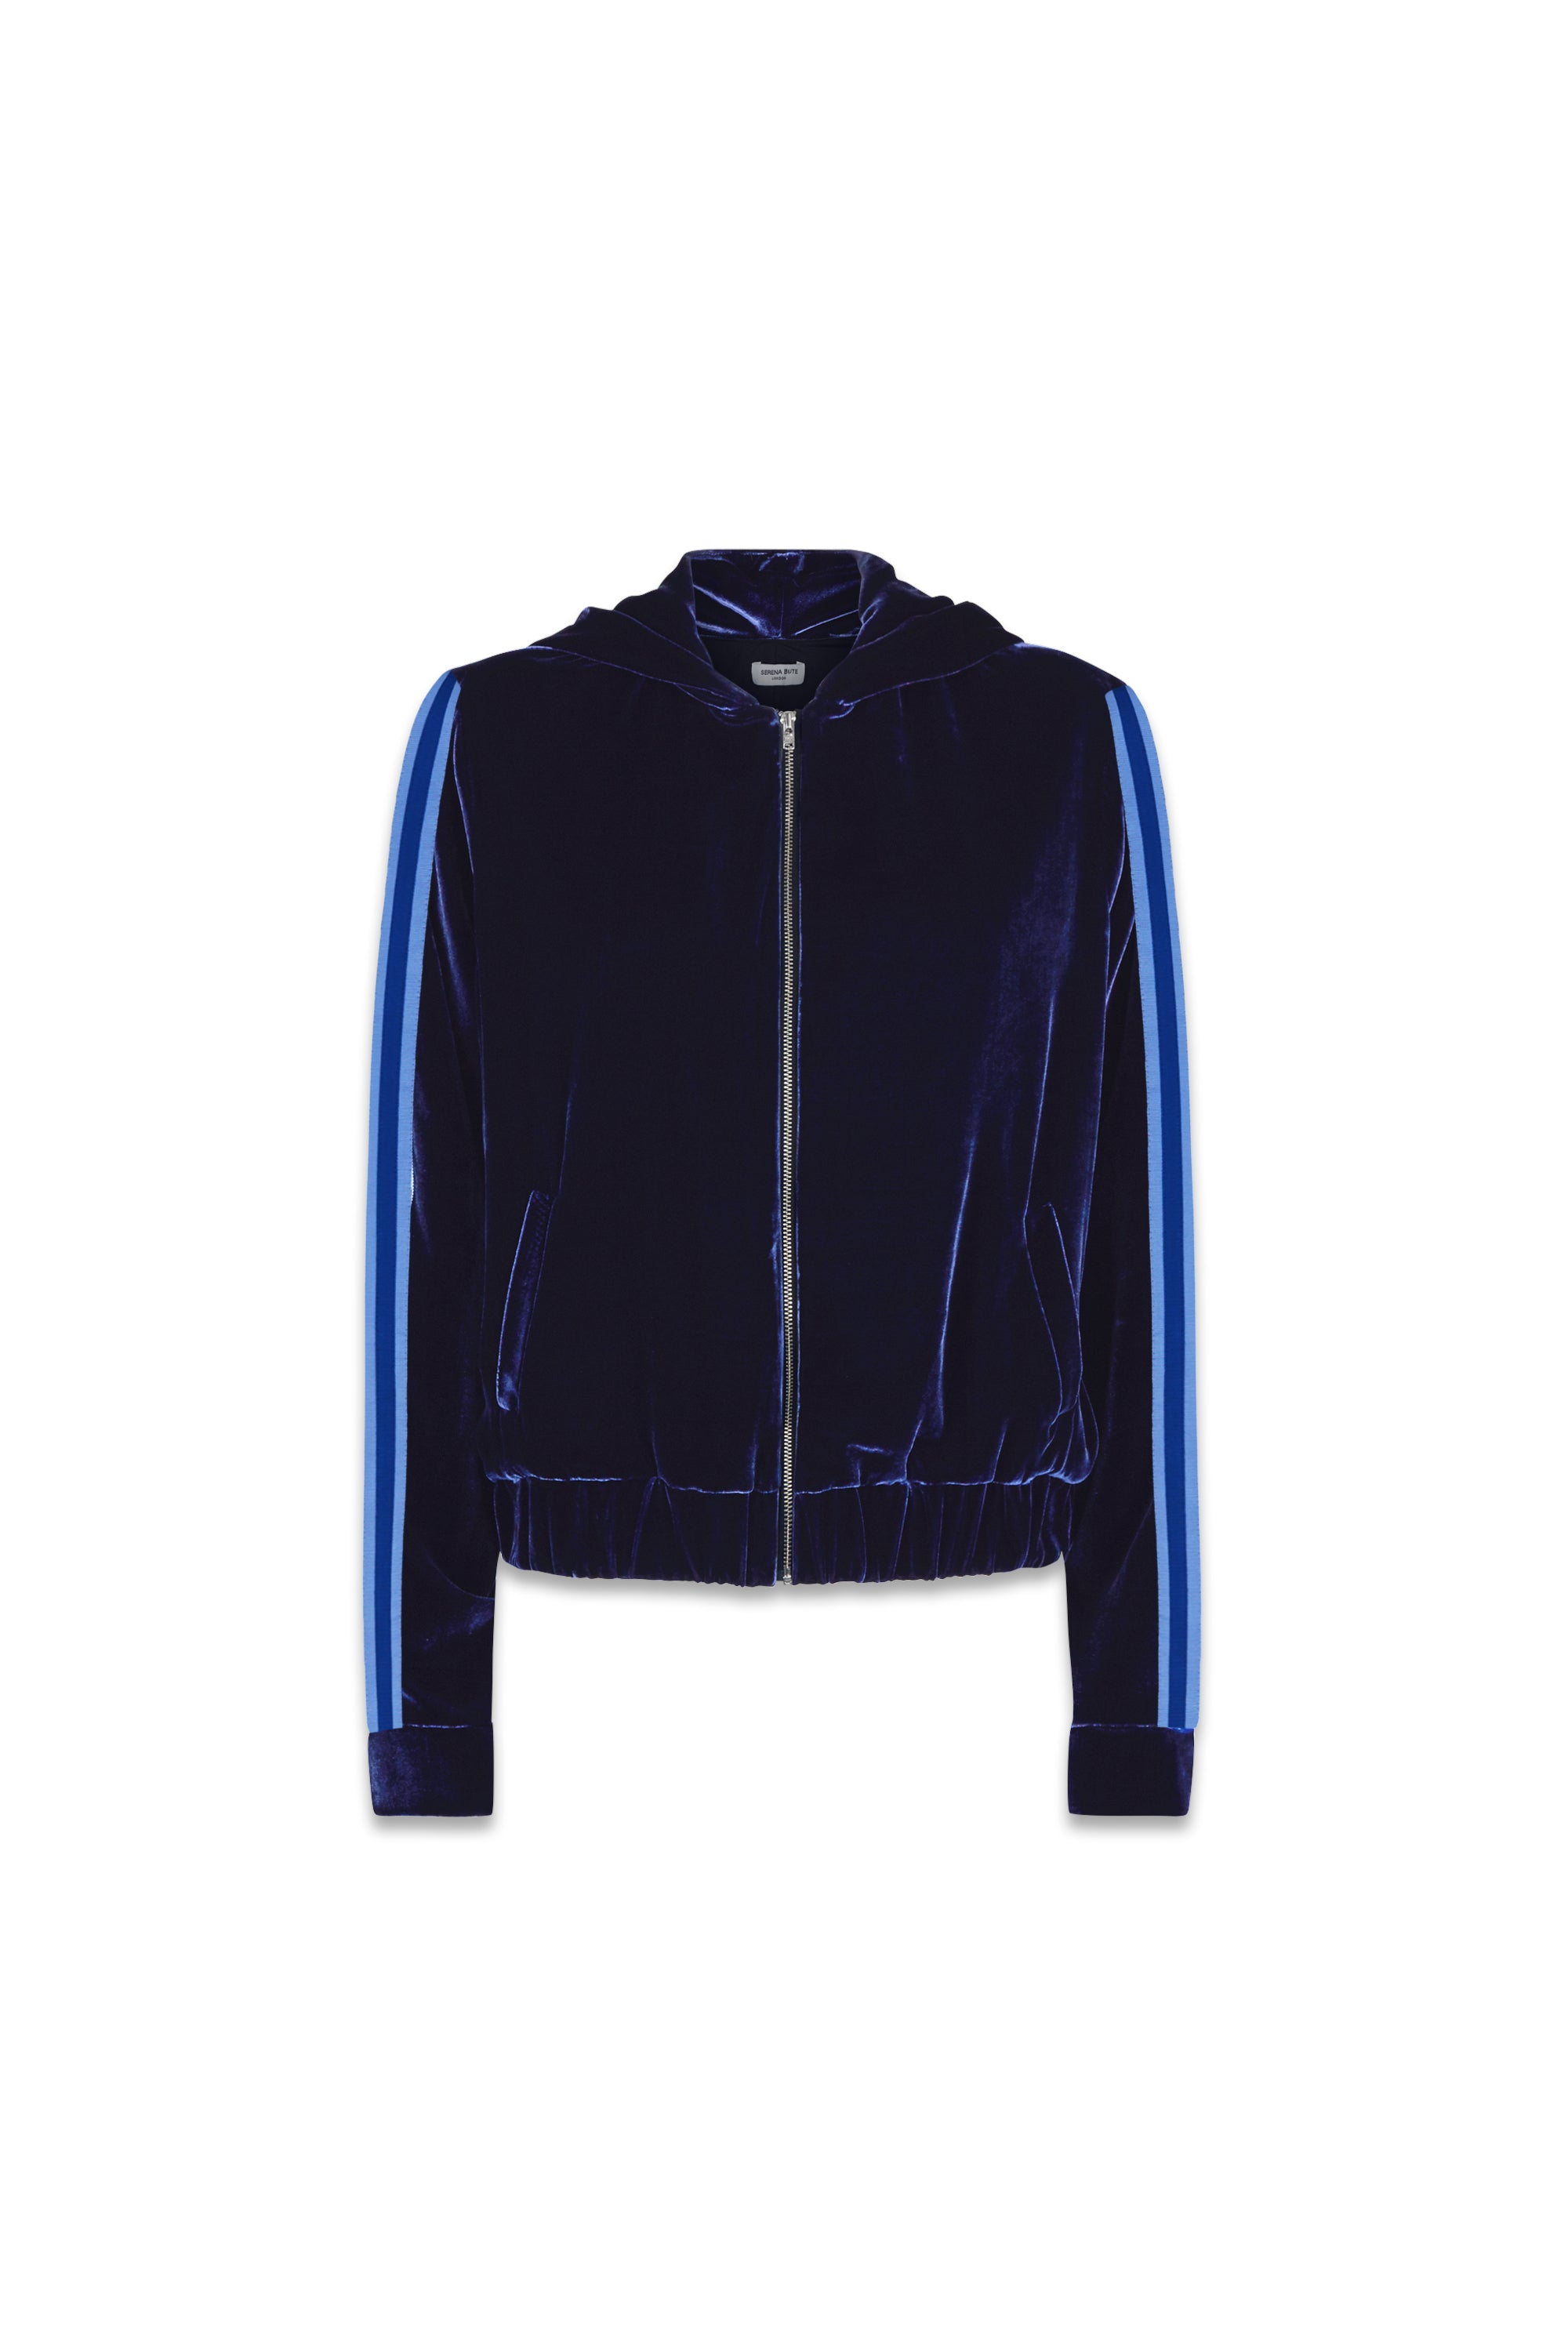 The Cropped Hoodie - Insignia, Navy & Blue Velvet